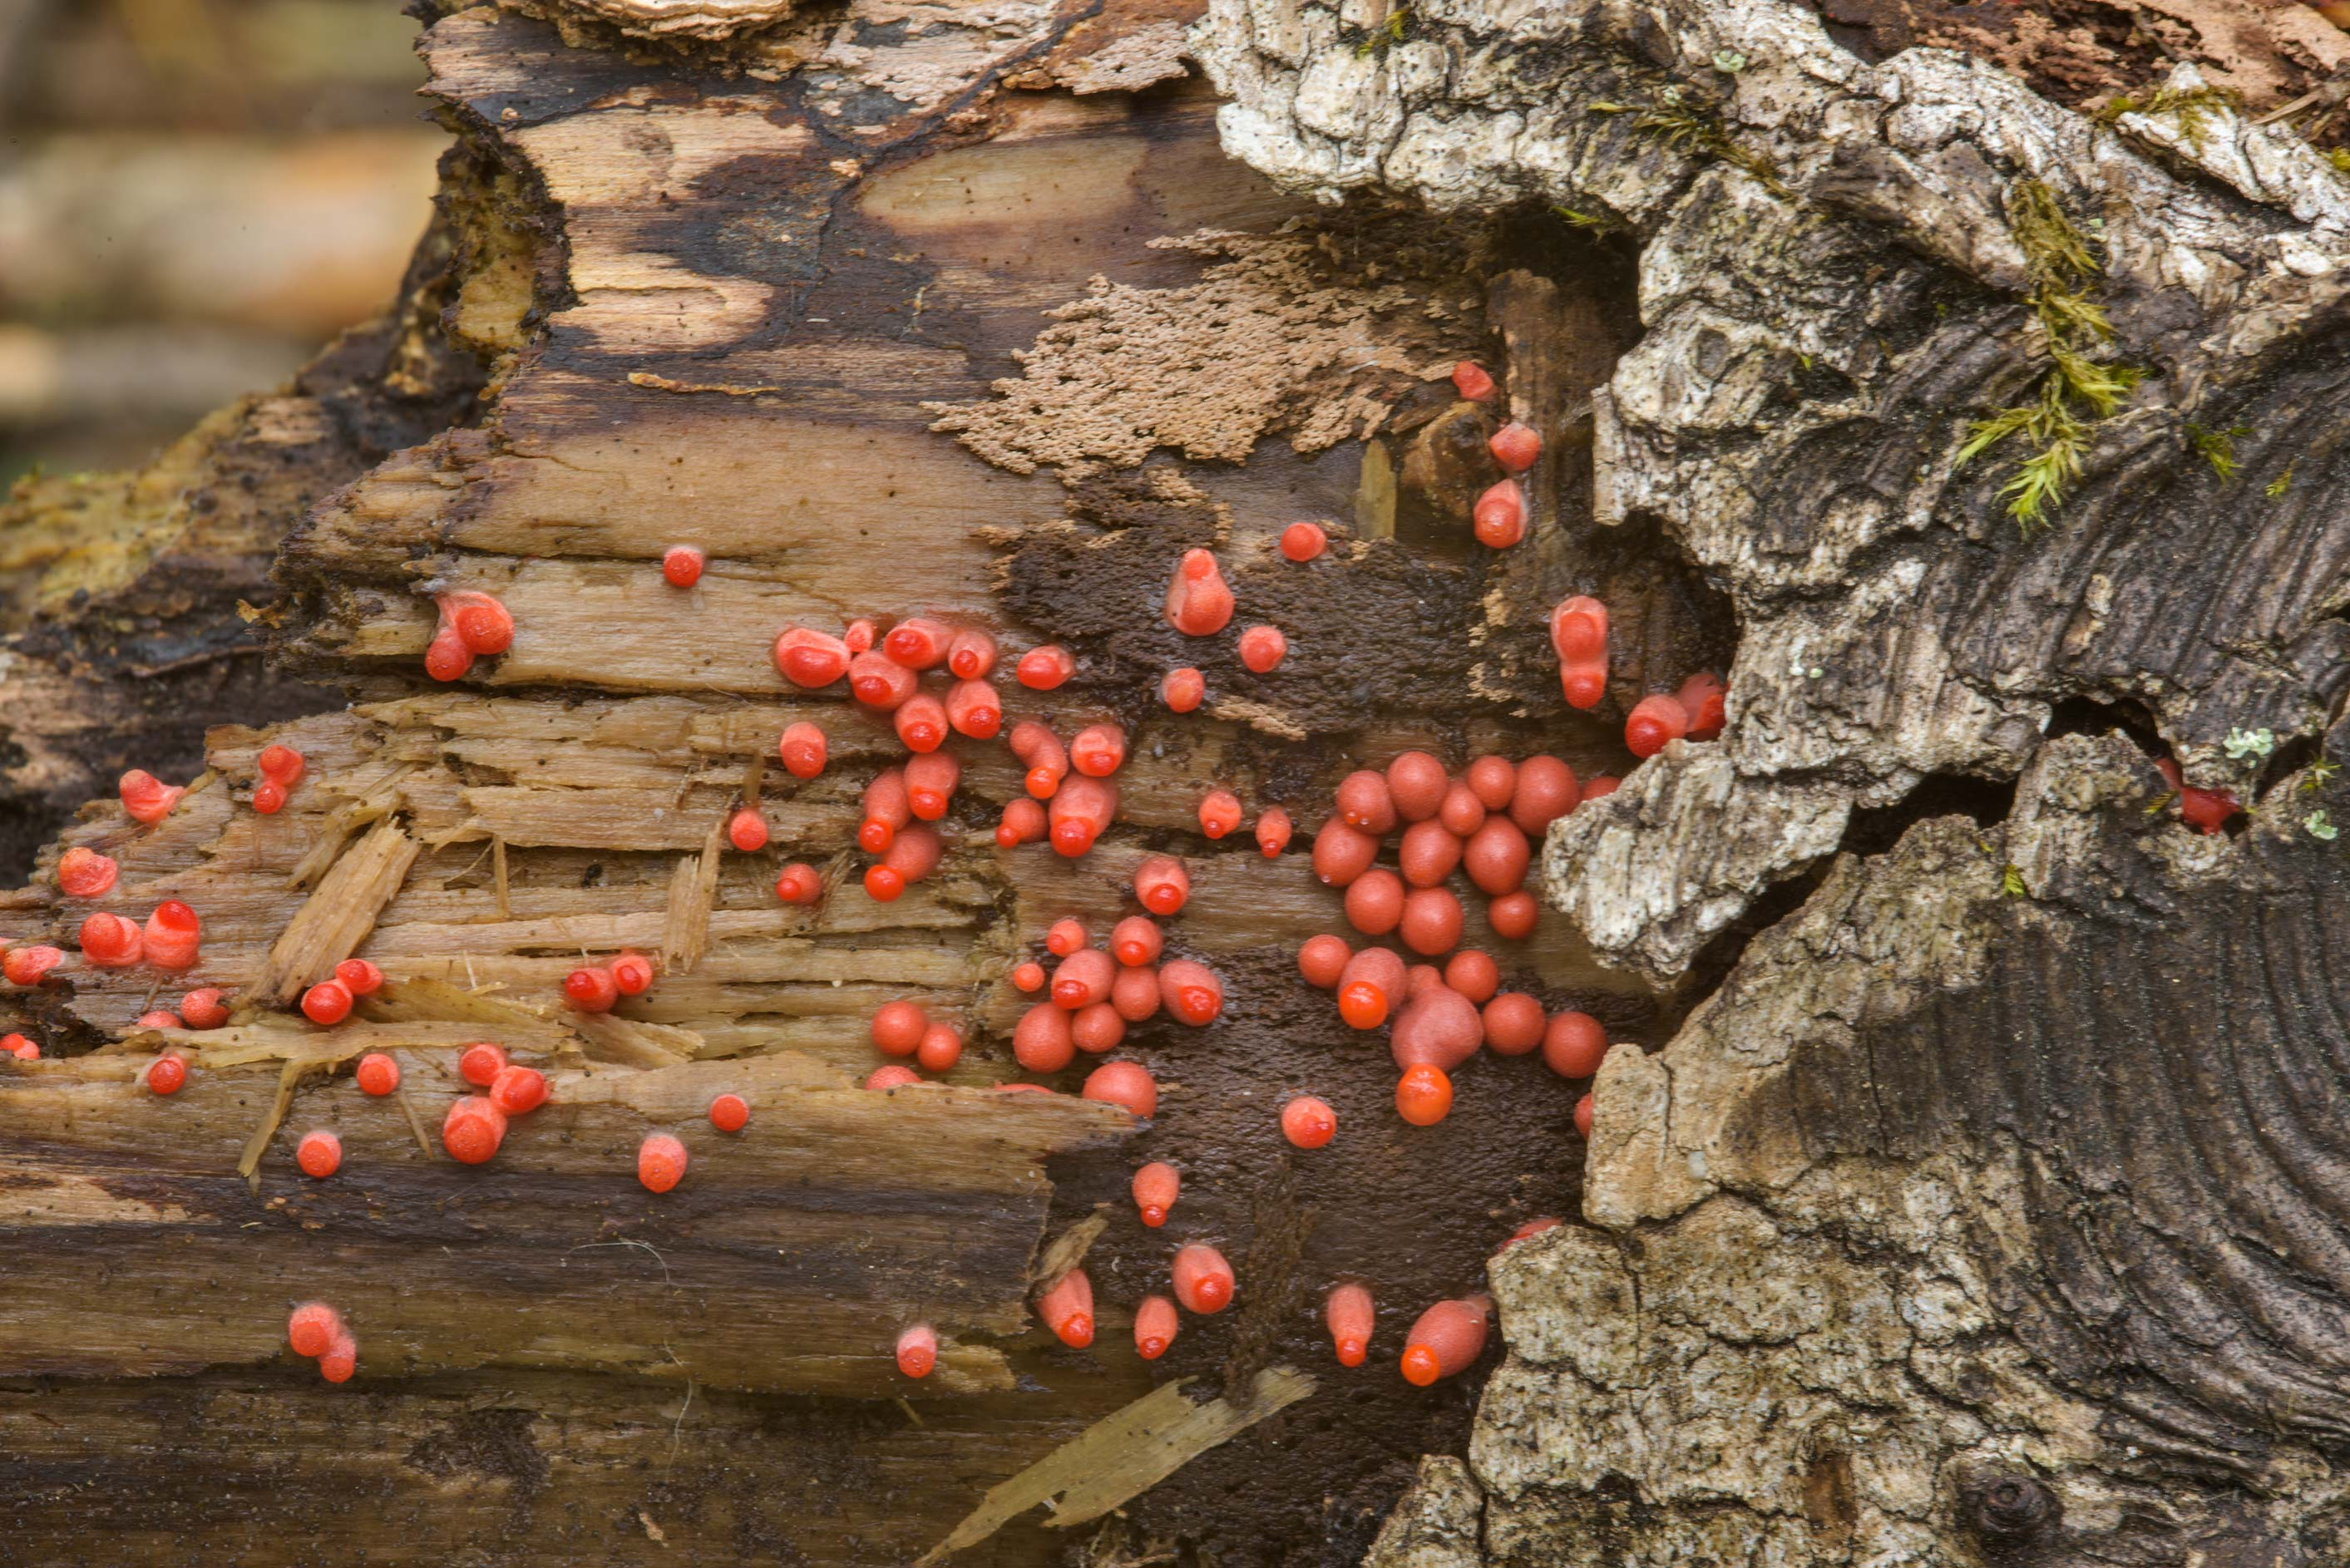 Small red balls of Wolf's milk slime mold...Sosnovka Park. St.Petersburg, Russia